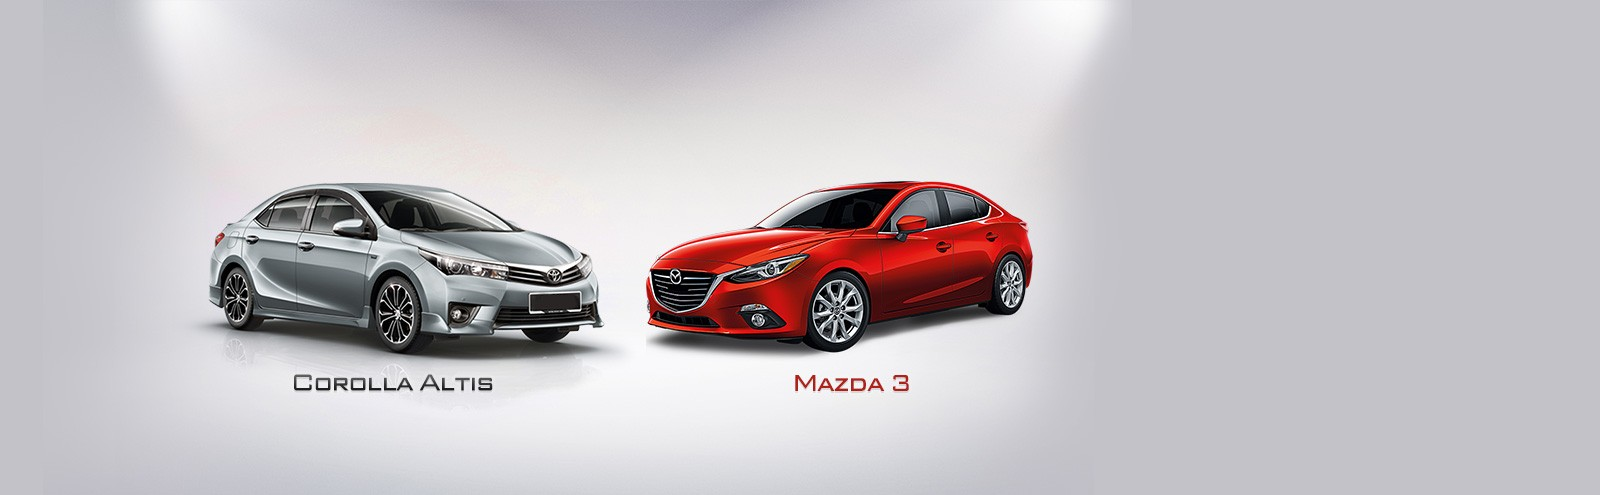 mazda3-vs-corolla-altis